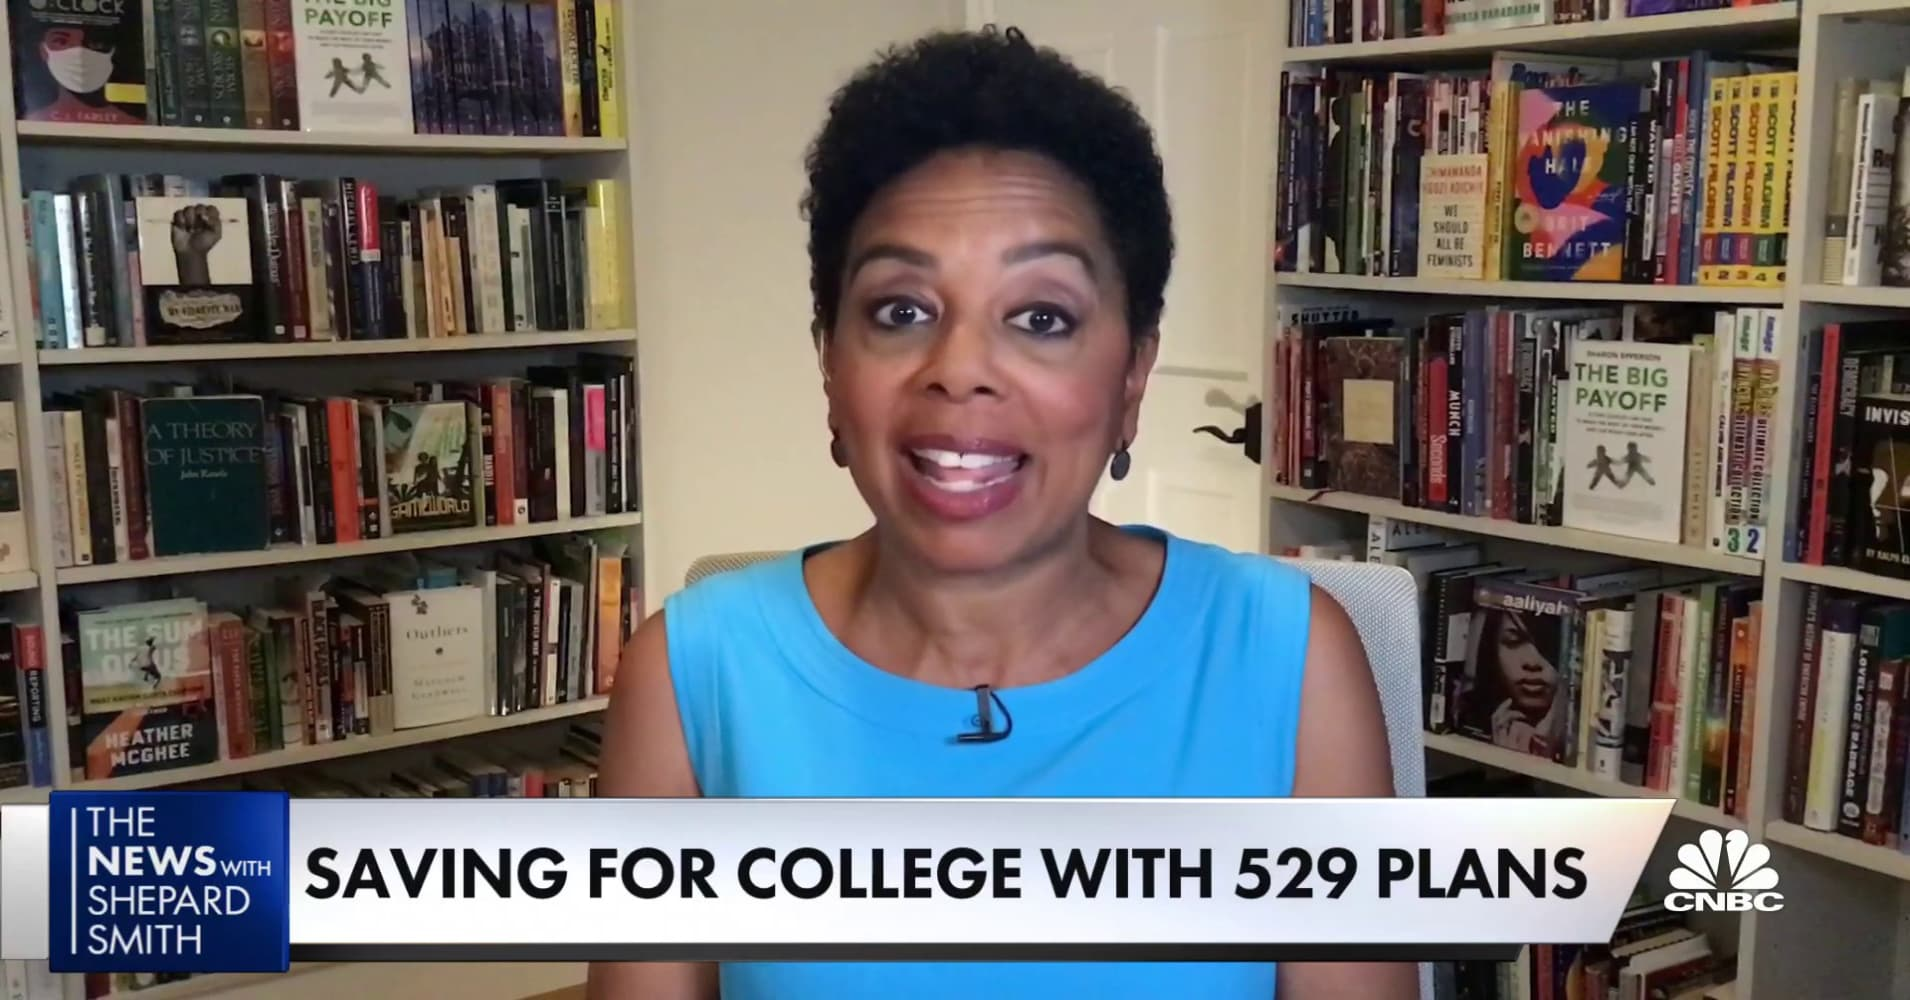 How to use a 529 plan to save for college